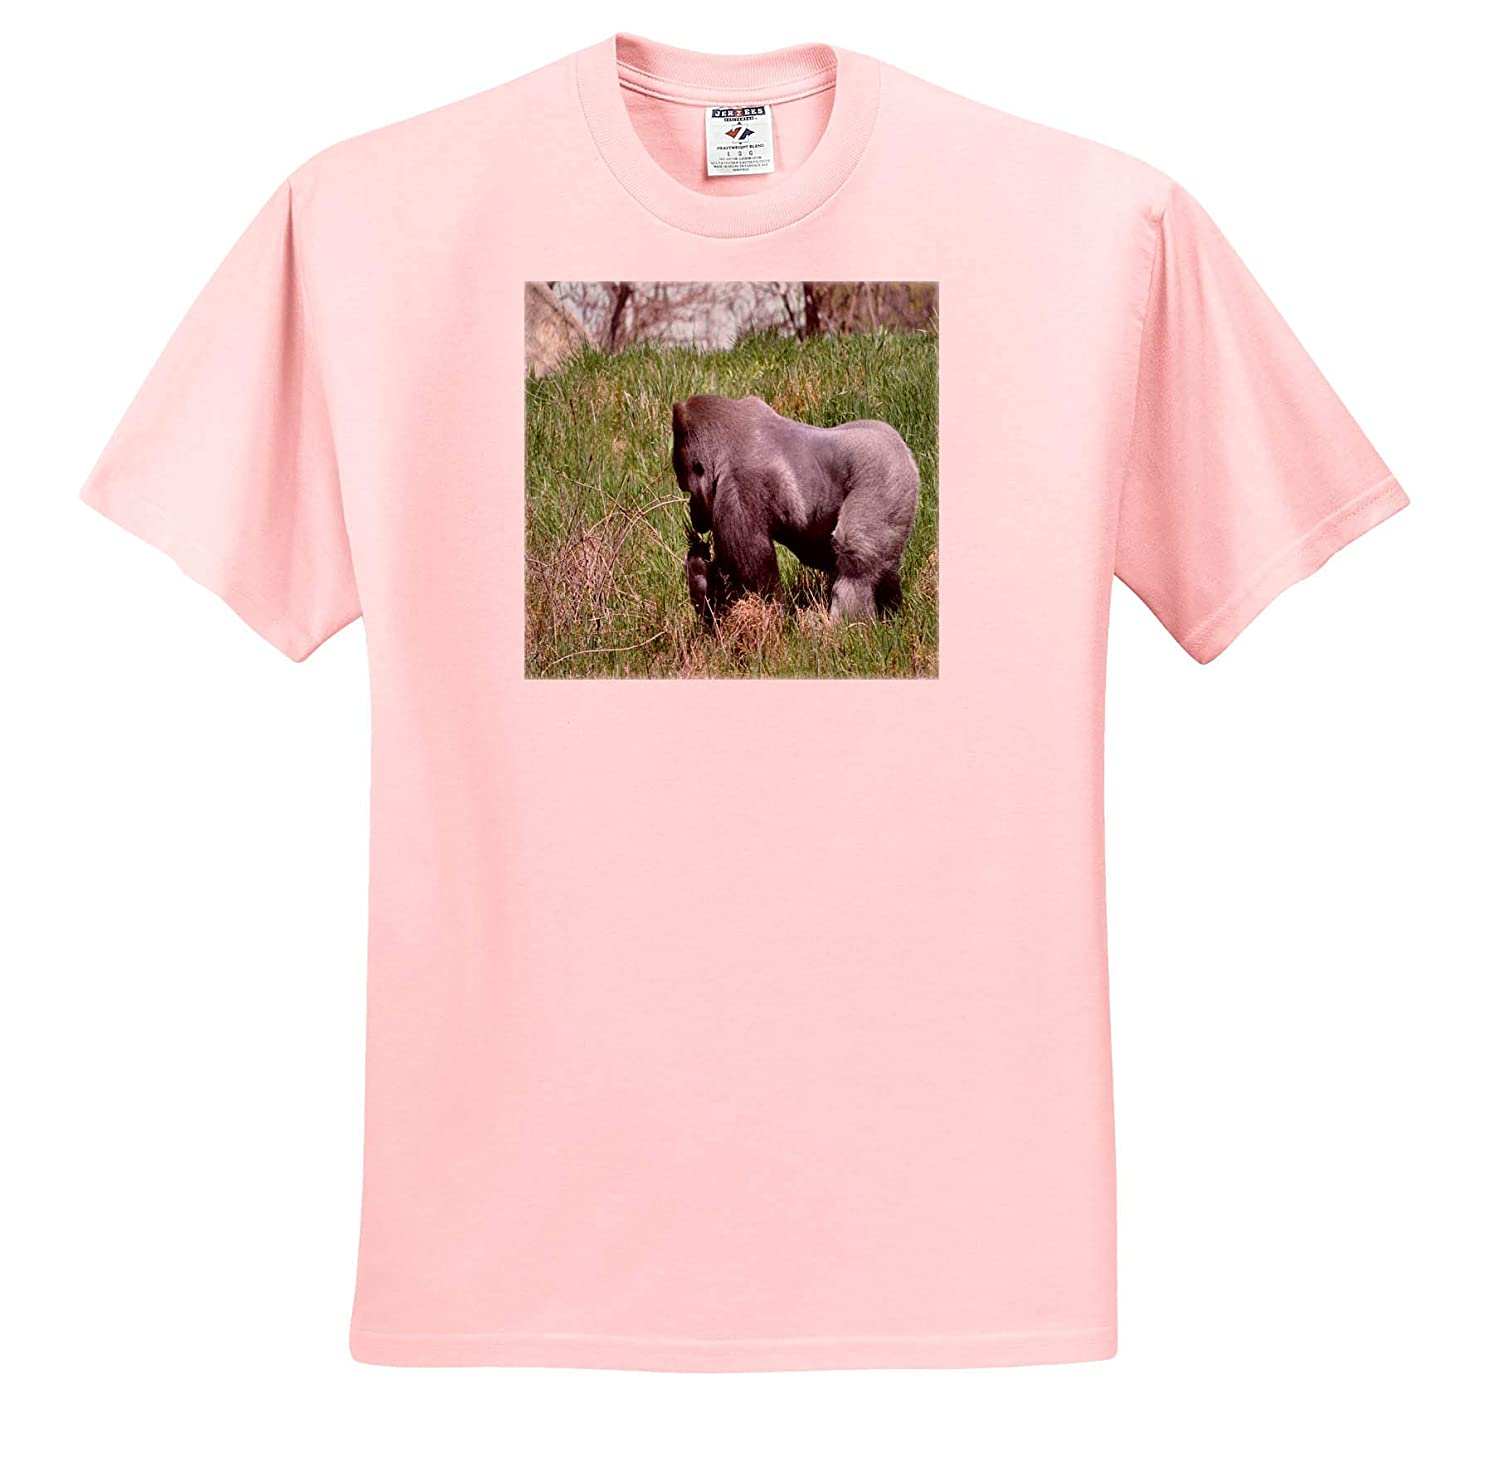 Silverback Gorilla Smelling The Grass ts/_314299 Adult T-Shirt XL Animals 3dRose Dreamscapes by Leslie